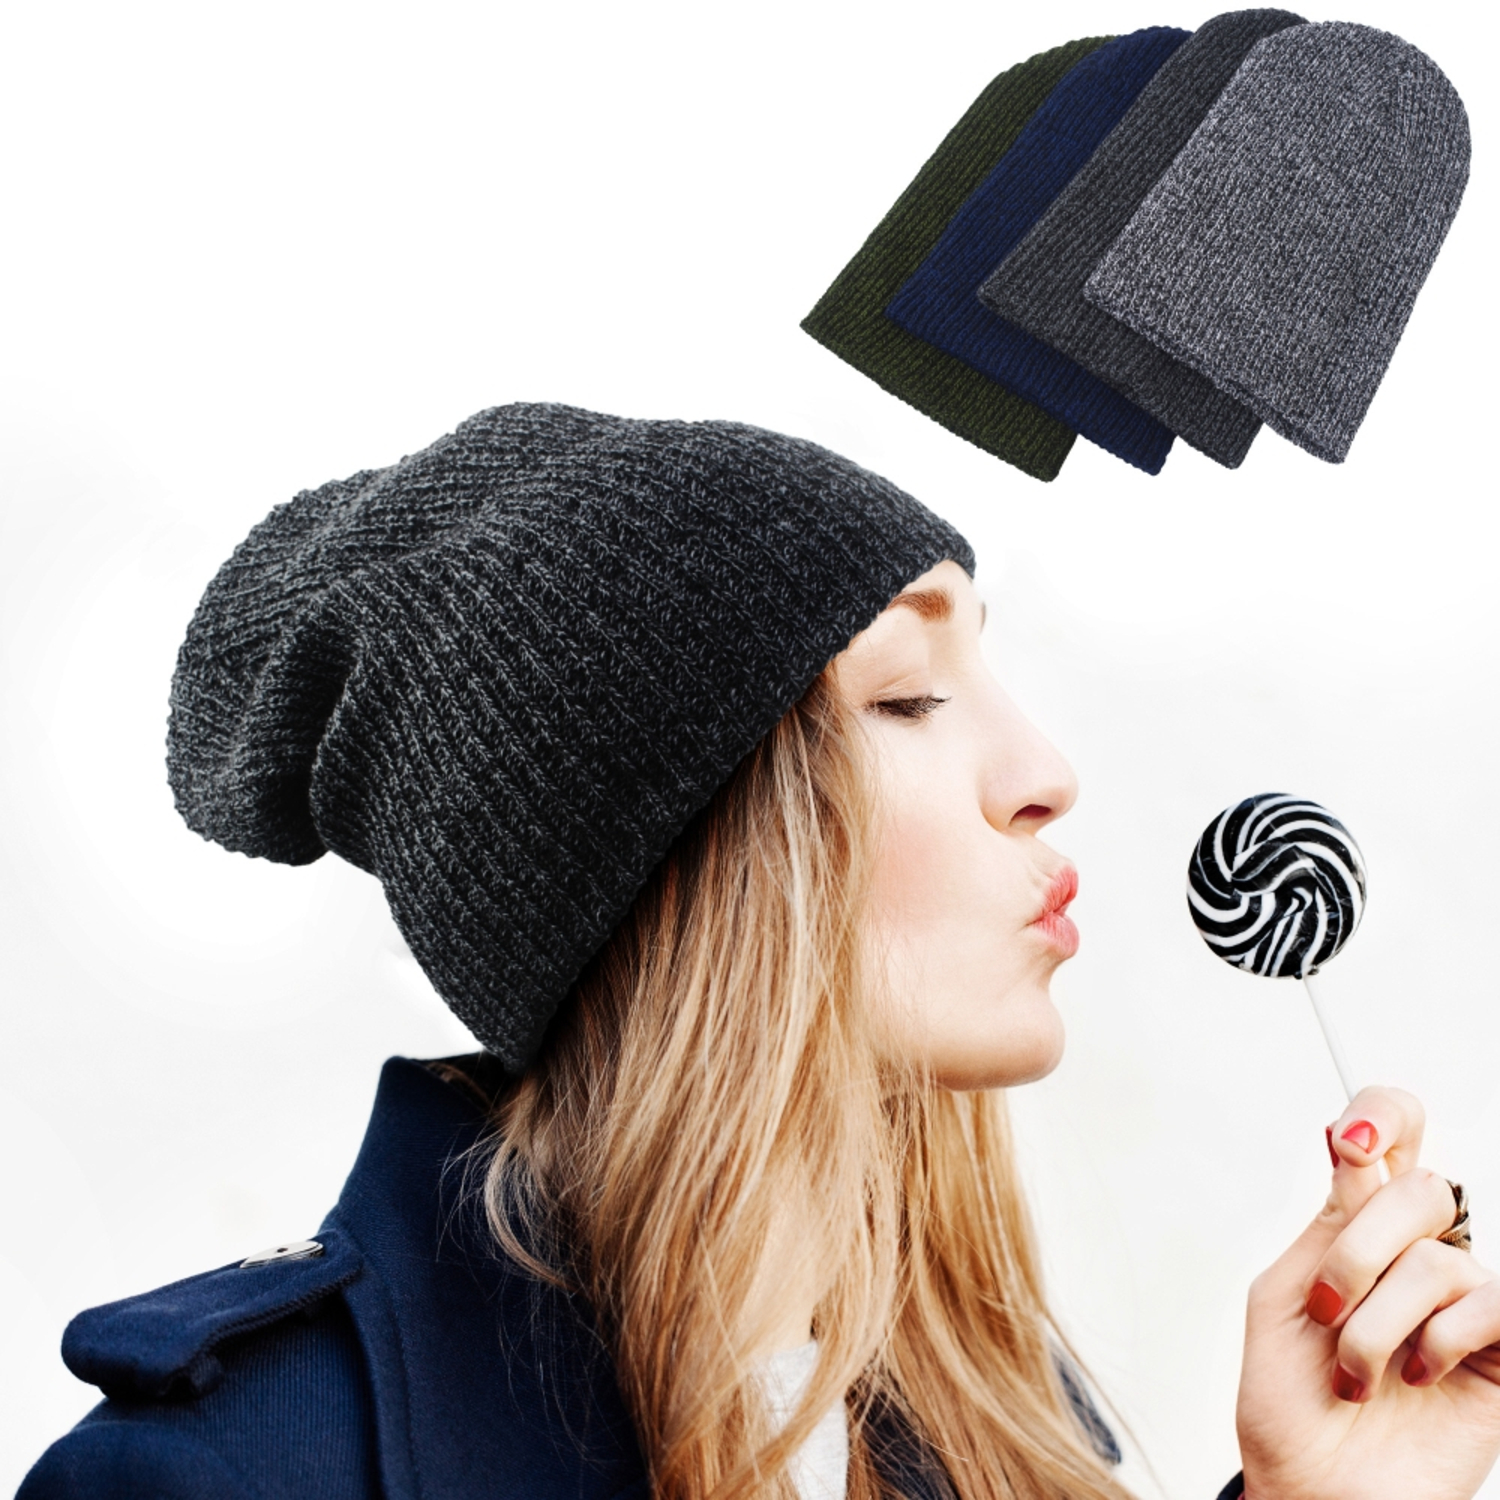 feb0f32979f C.C - C.C Women s Thick Soft Knit Beanie Cap Hat - Walmart.com